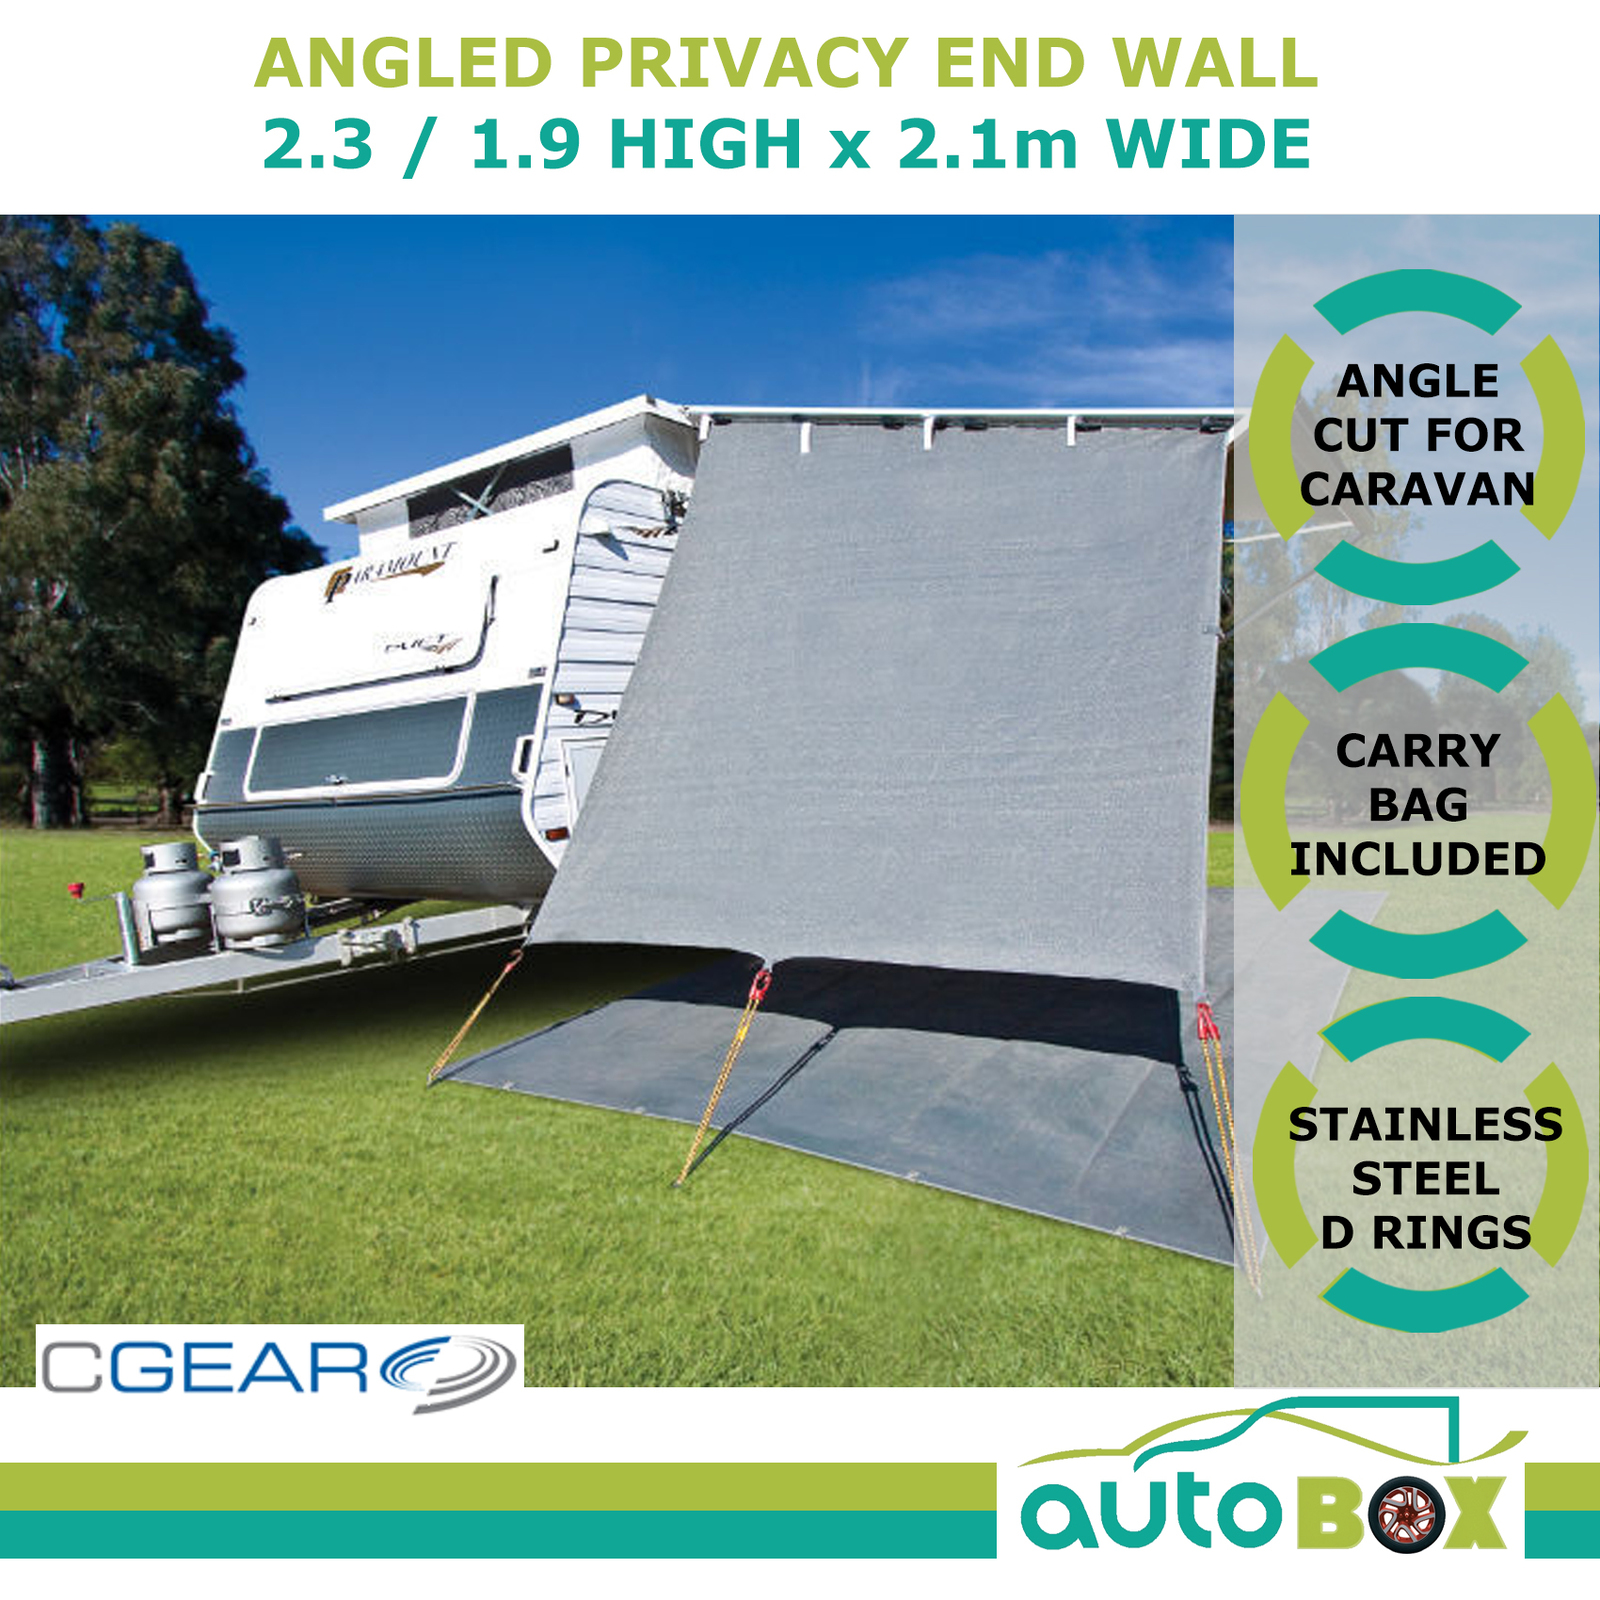 CGEAR Caravan Privacy End Wall Drop Sunscreen Shade Angled For Roll Out Awning